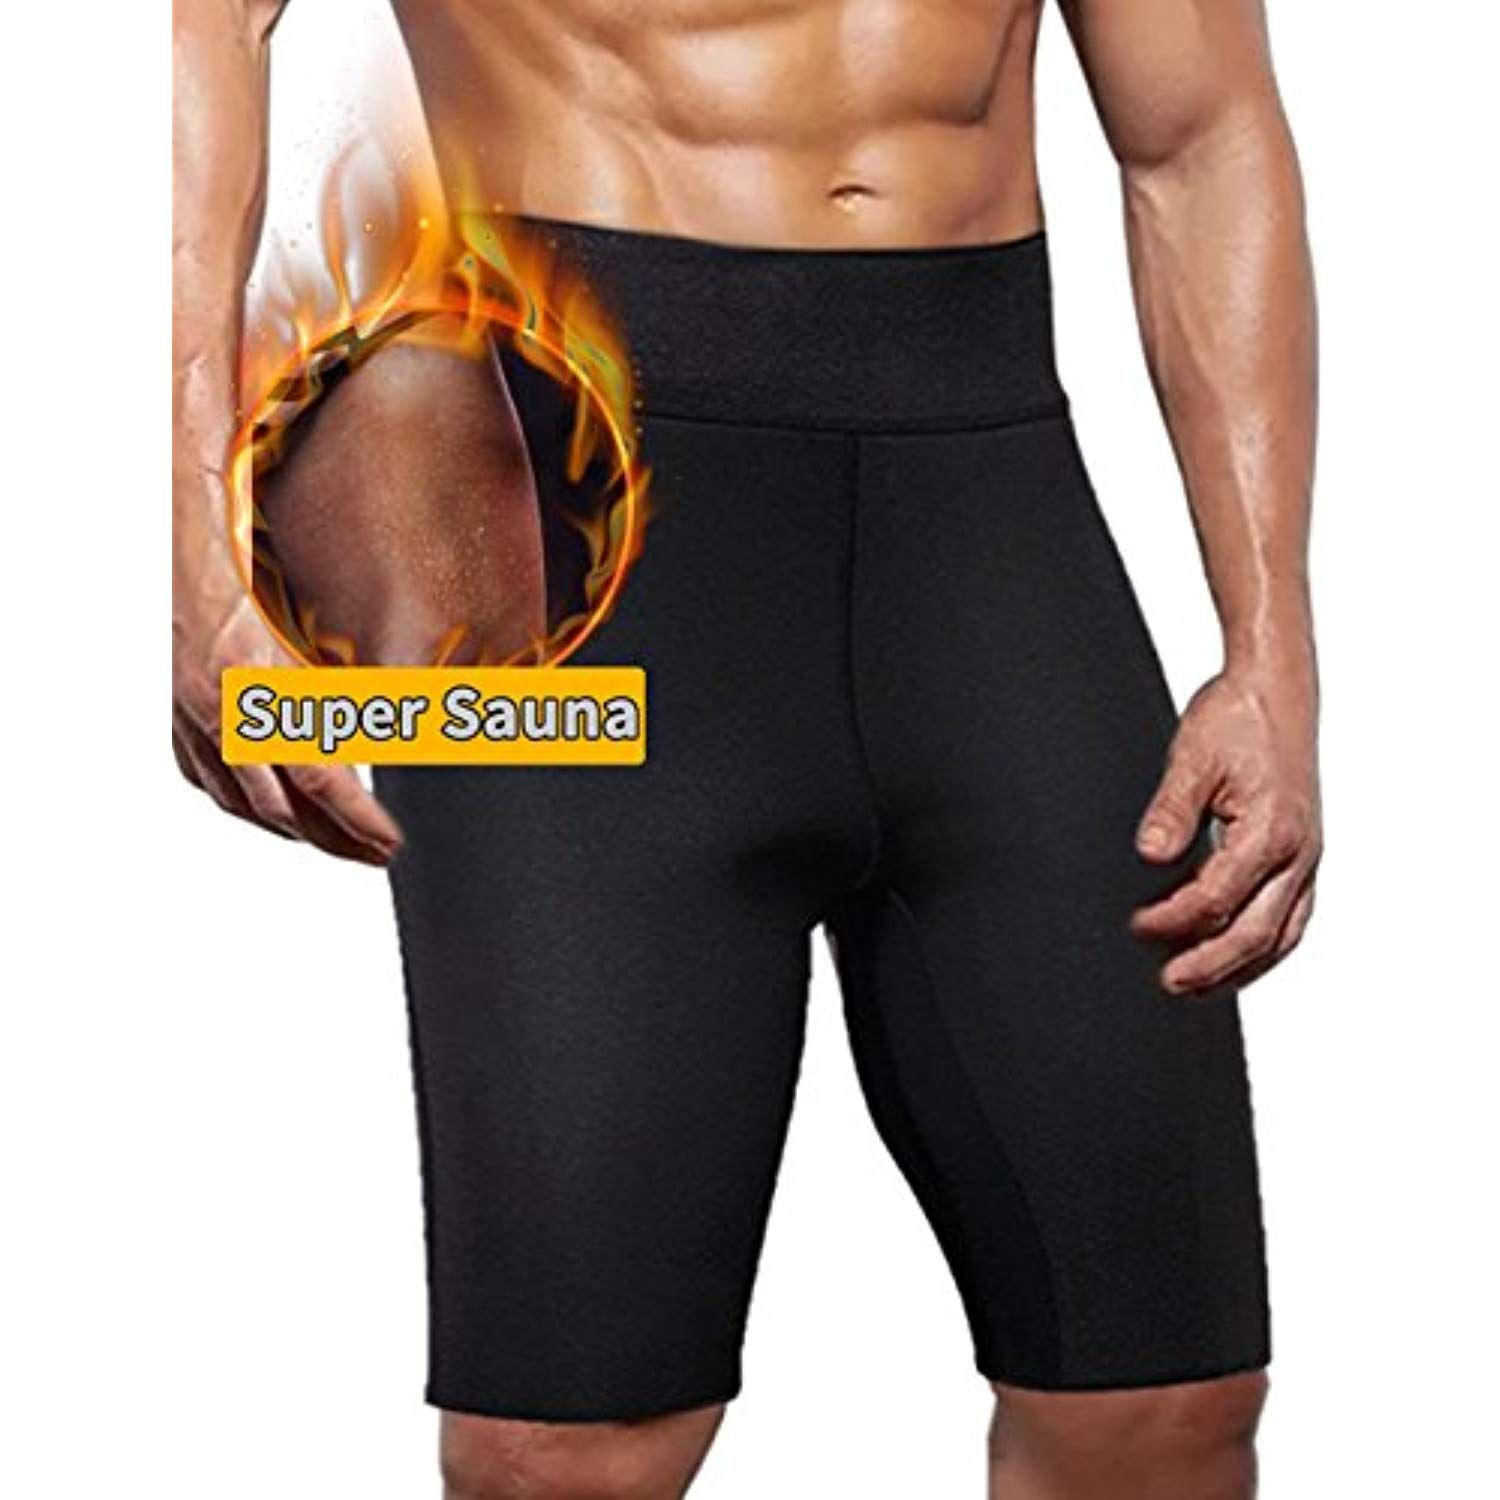 03201dc4dbc Glamours Sauna Shorts Weight Loss Pants Hot Neoprene Thigh Sweat Shorts  Body Shaper Pants for Men     Details can be found by clicking on the image.